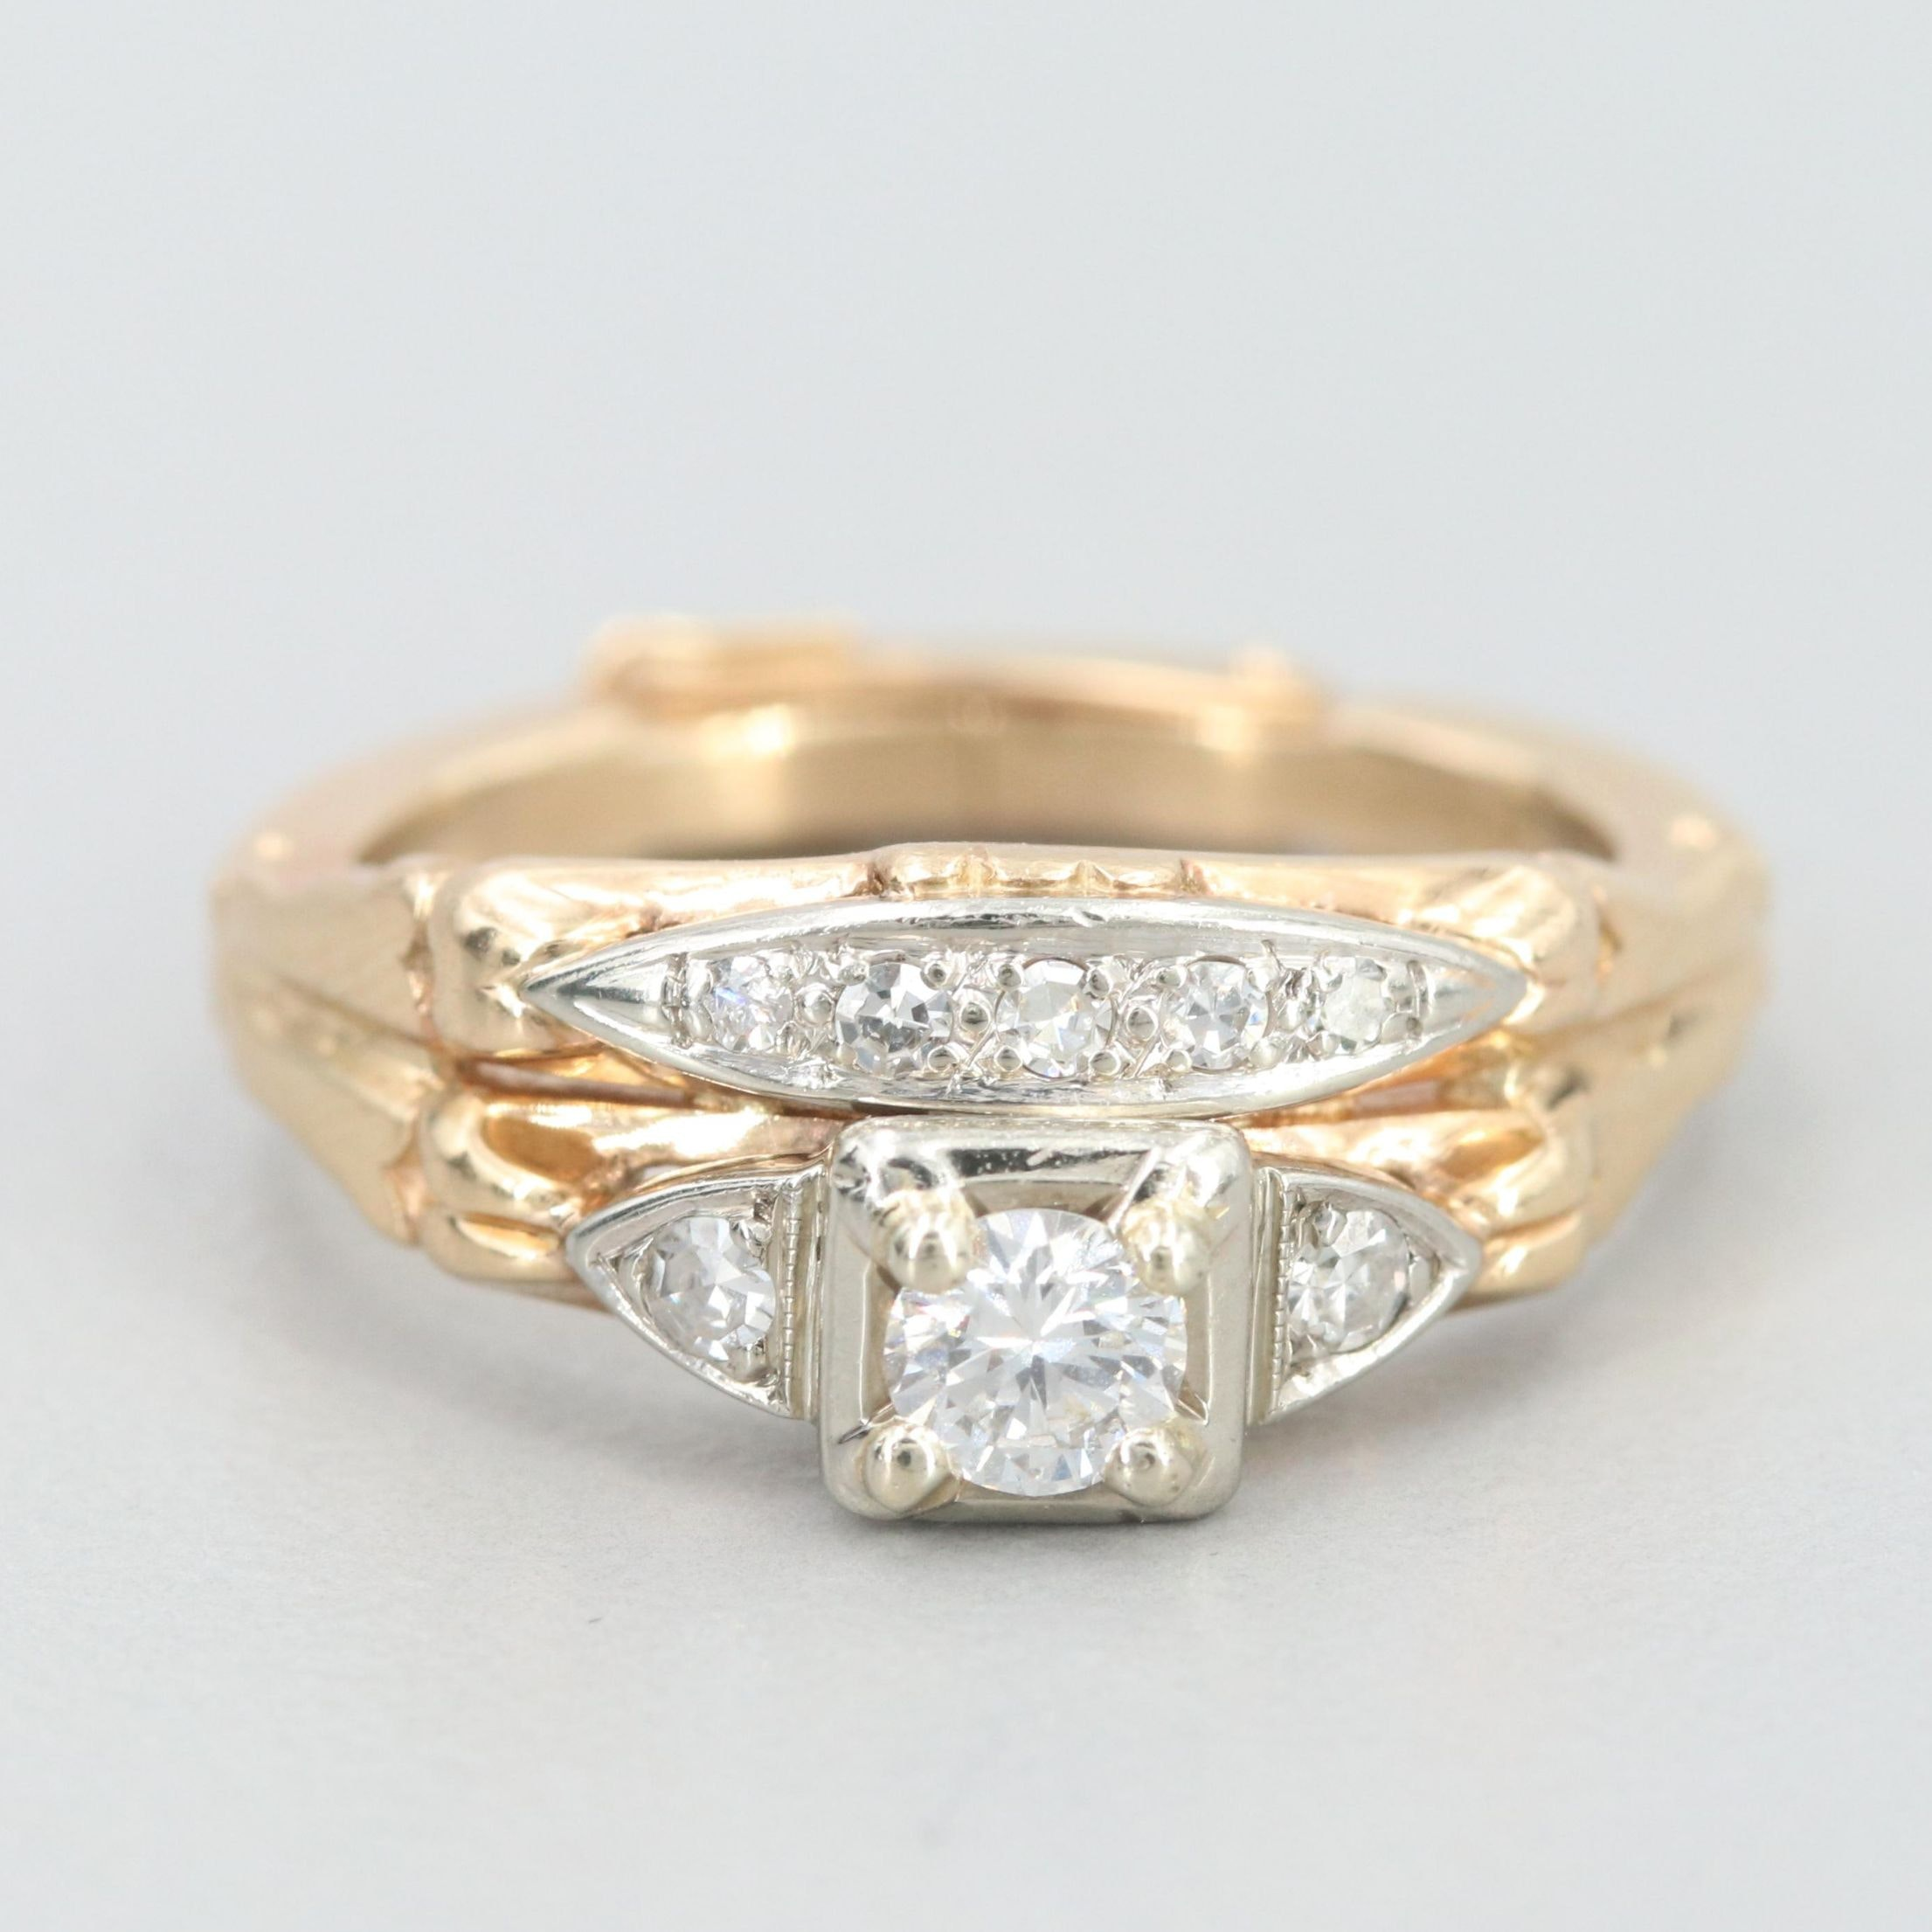 14K White and Yellow Gold Diamond Ring with Arthritic Shank